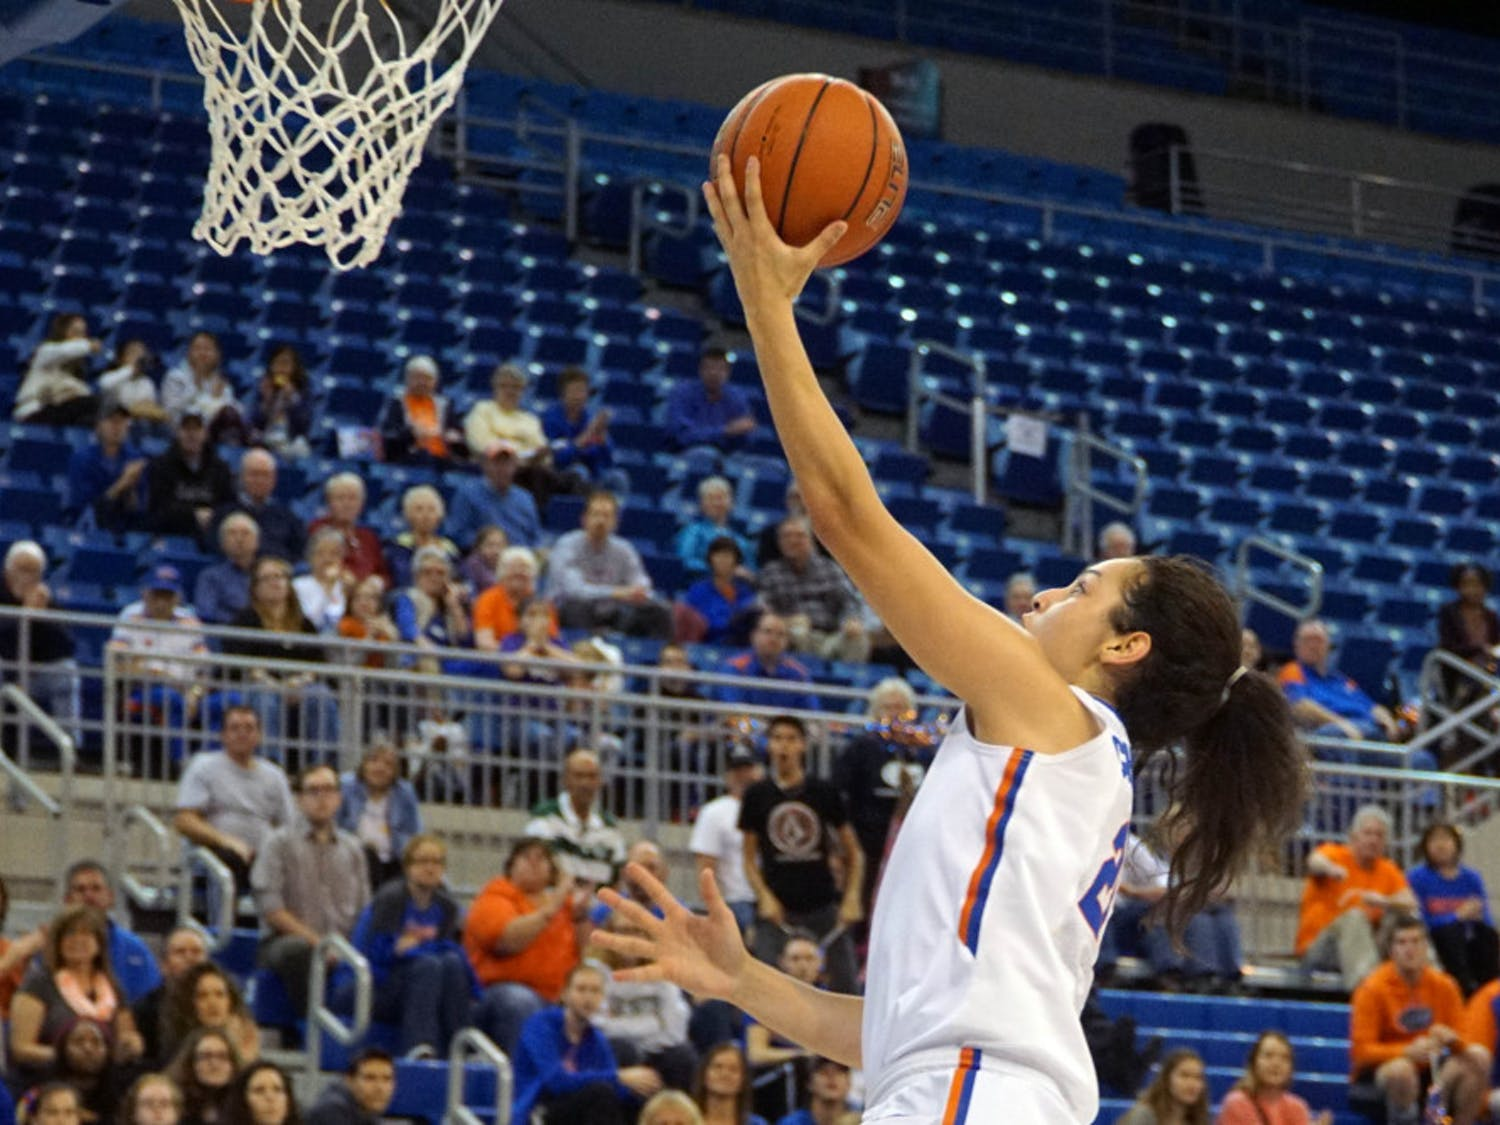 UF guard Eleanna Christinaki goes for a layupduring Florida's 53-45 win against LSU on Jan. 17, 2016, in the O'Connell Center.